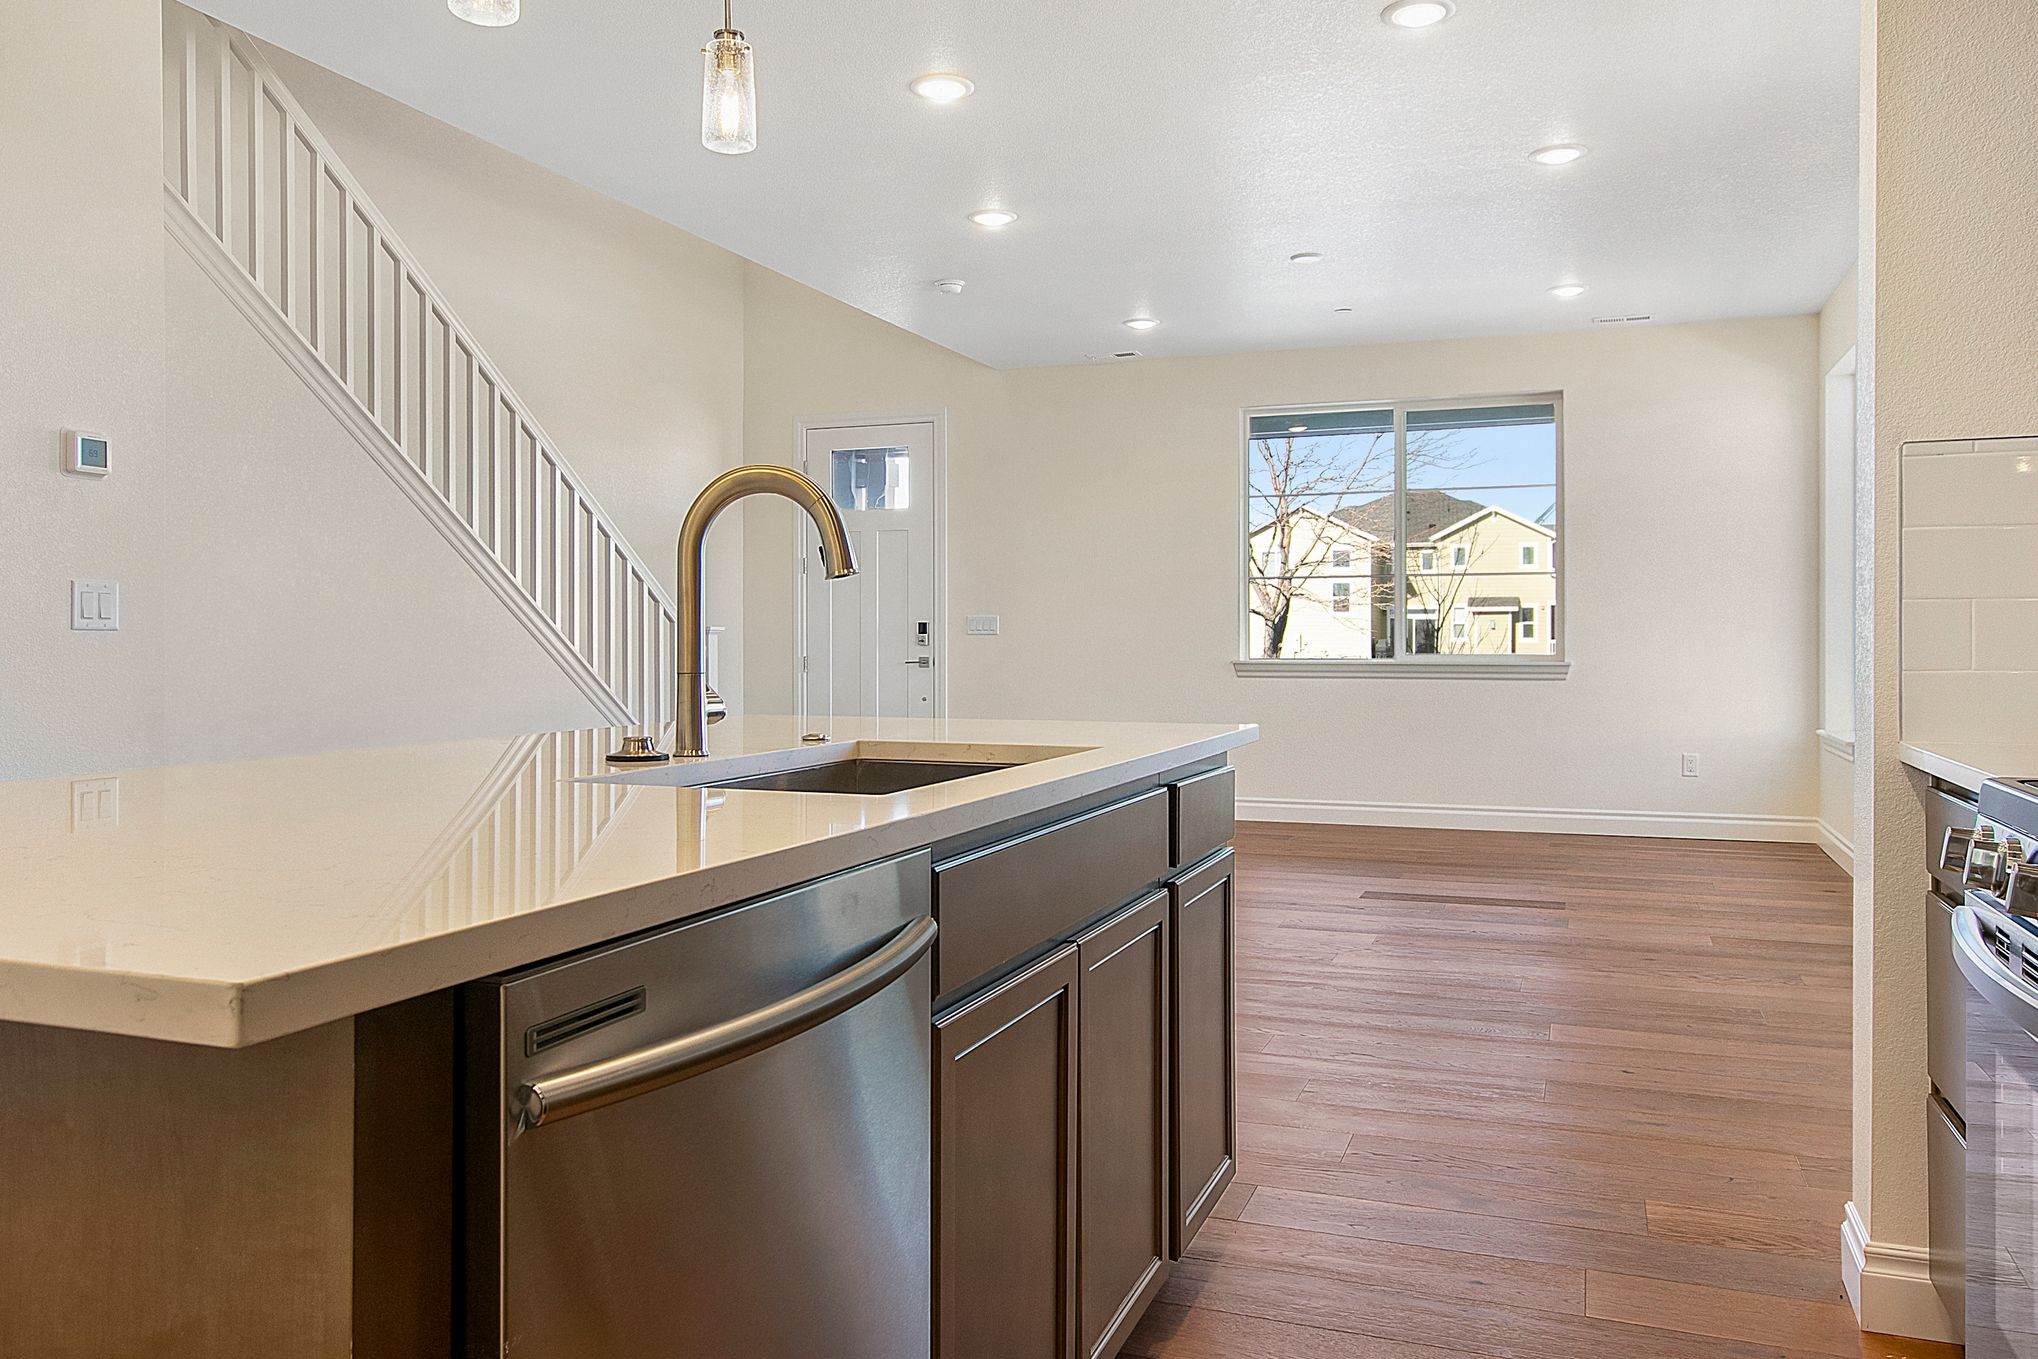 Kitchen featured in the McKenna By Lokal Homes in Colorado Springs, CO